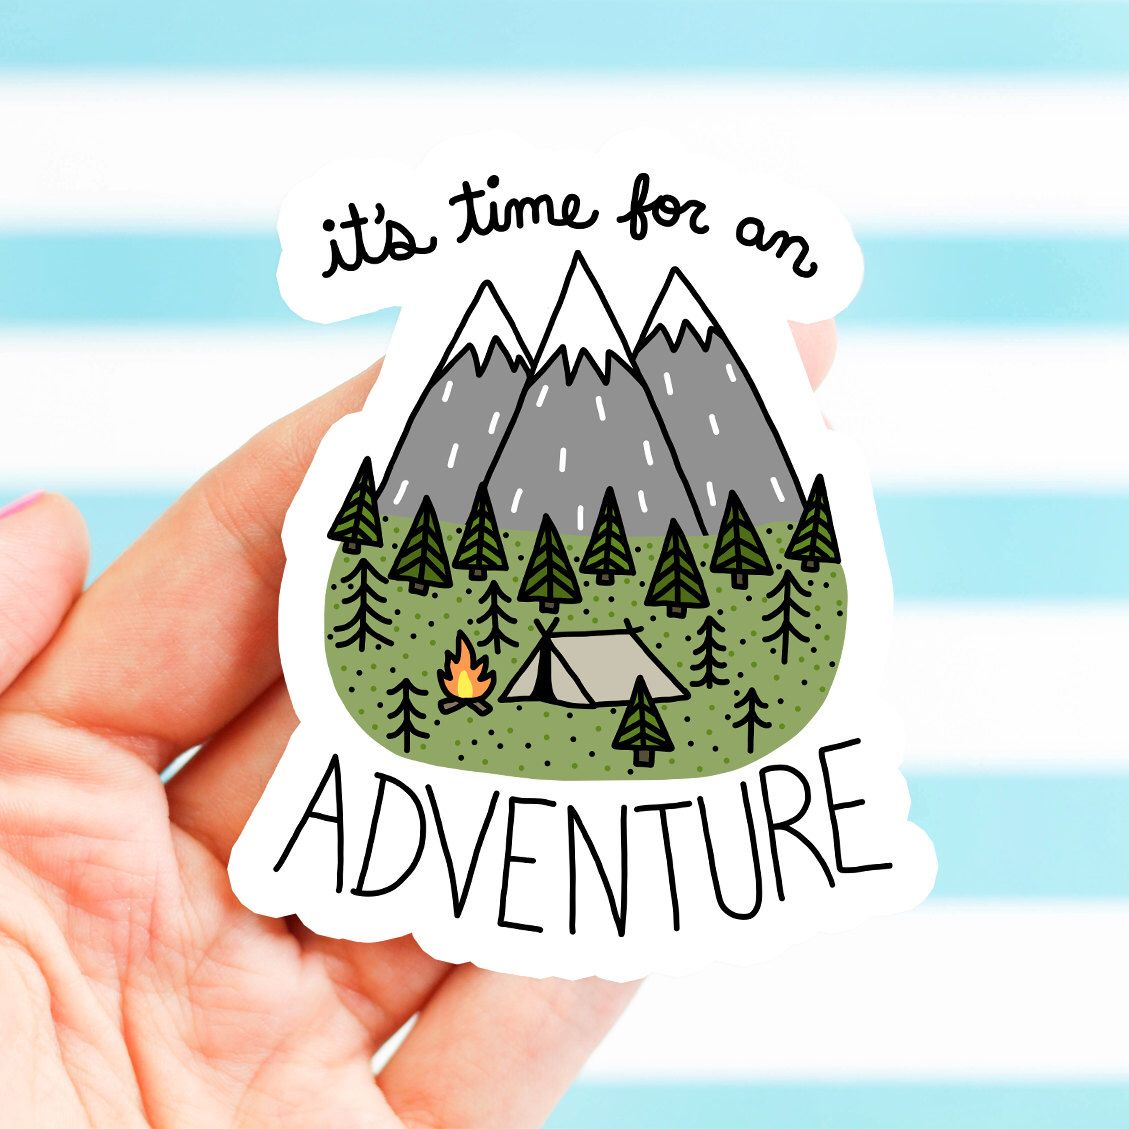 Adventure sticker dad fathers day gift bike stickers nature bumper stickers